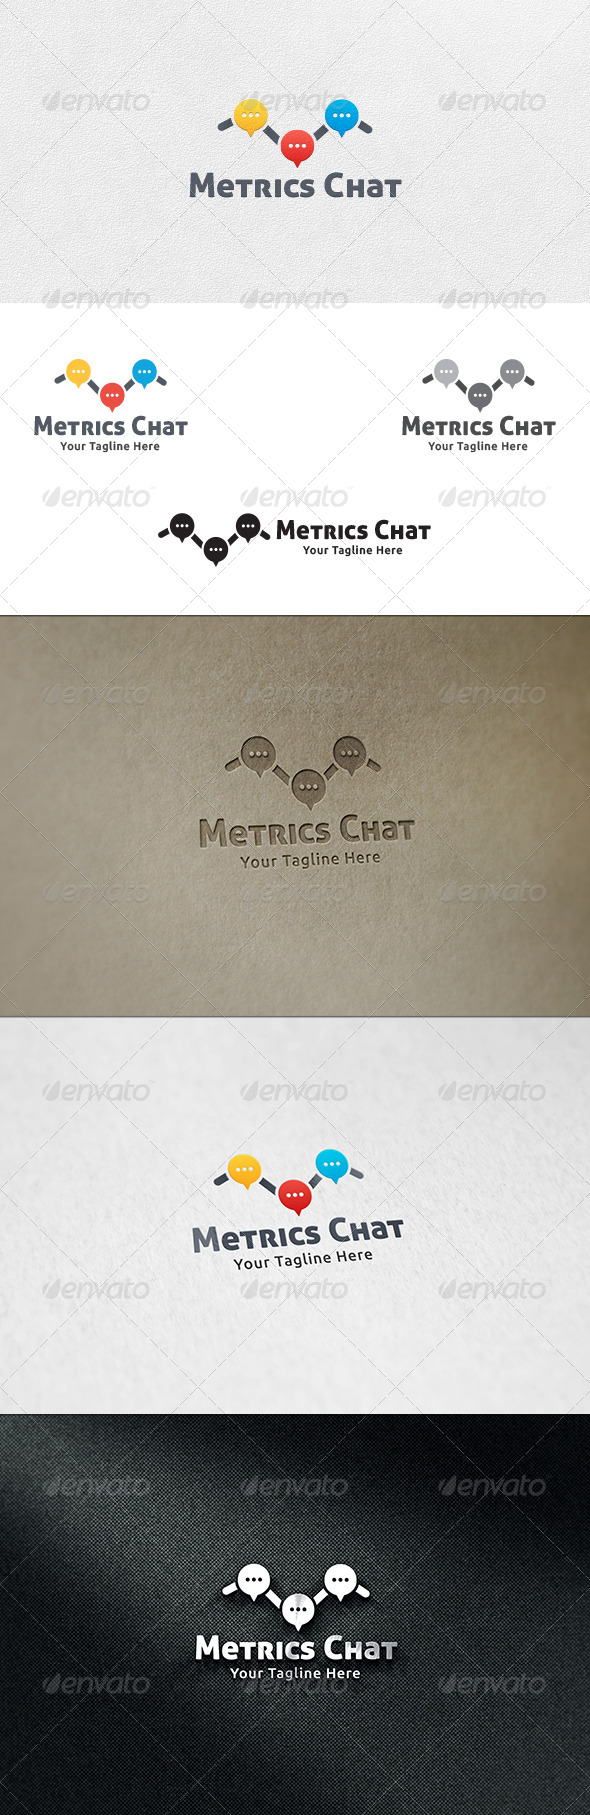 GraphicRiver Metrics Chat Logo Template 7193506